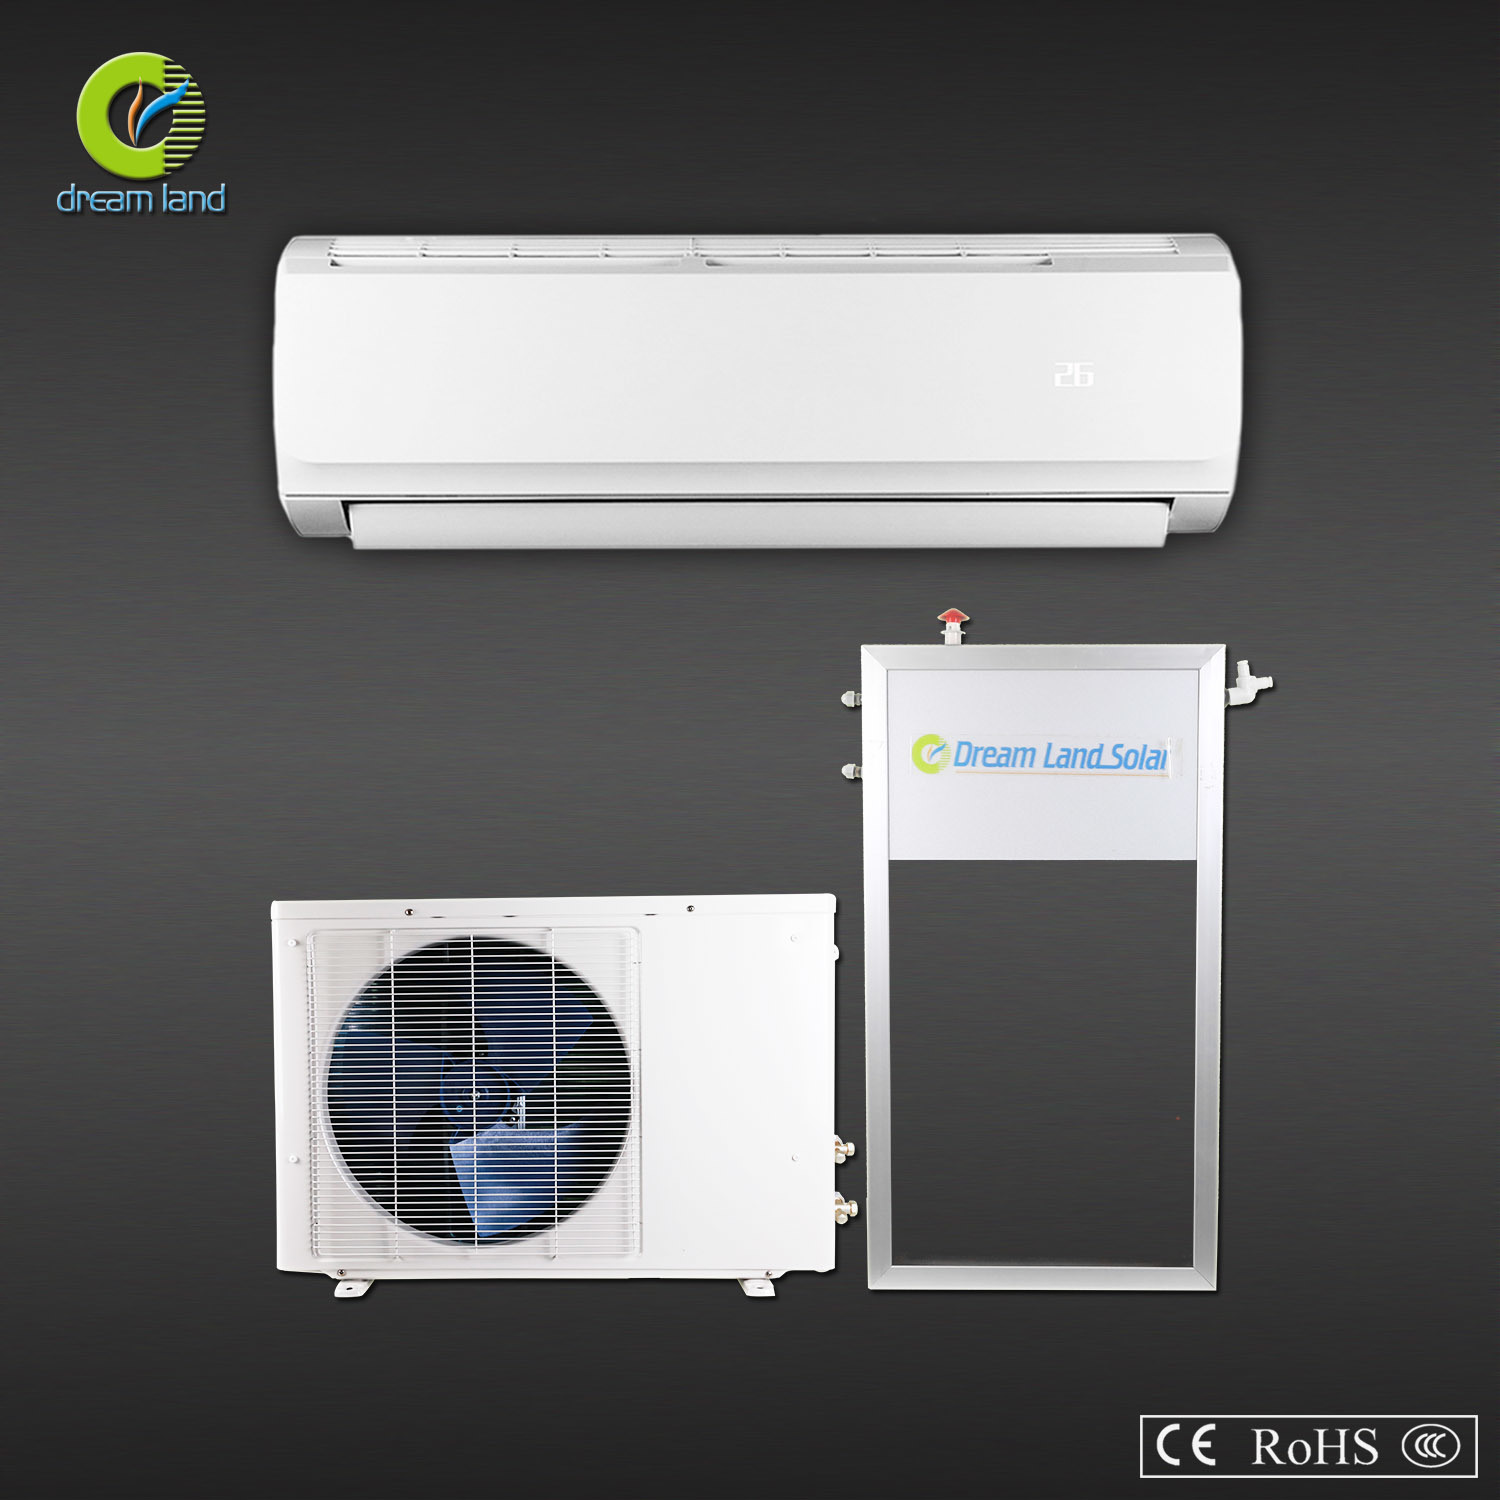 solar air conditioner tkfr 100lw fresh air solar air conditioner tkfr  #8CB714